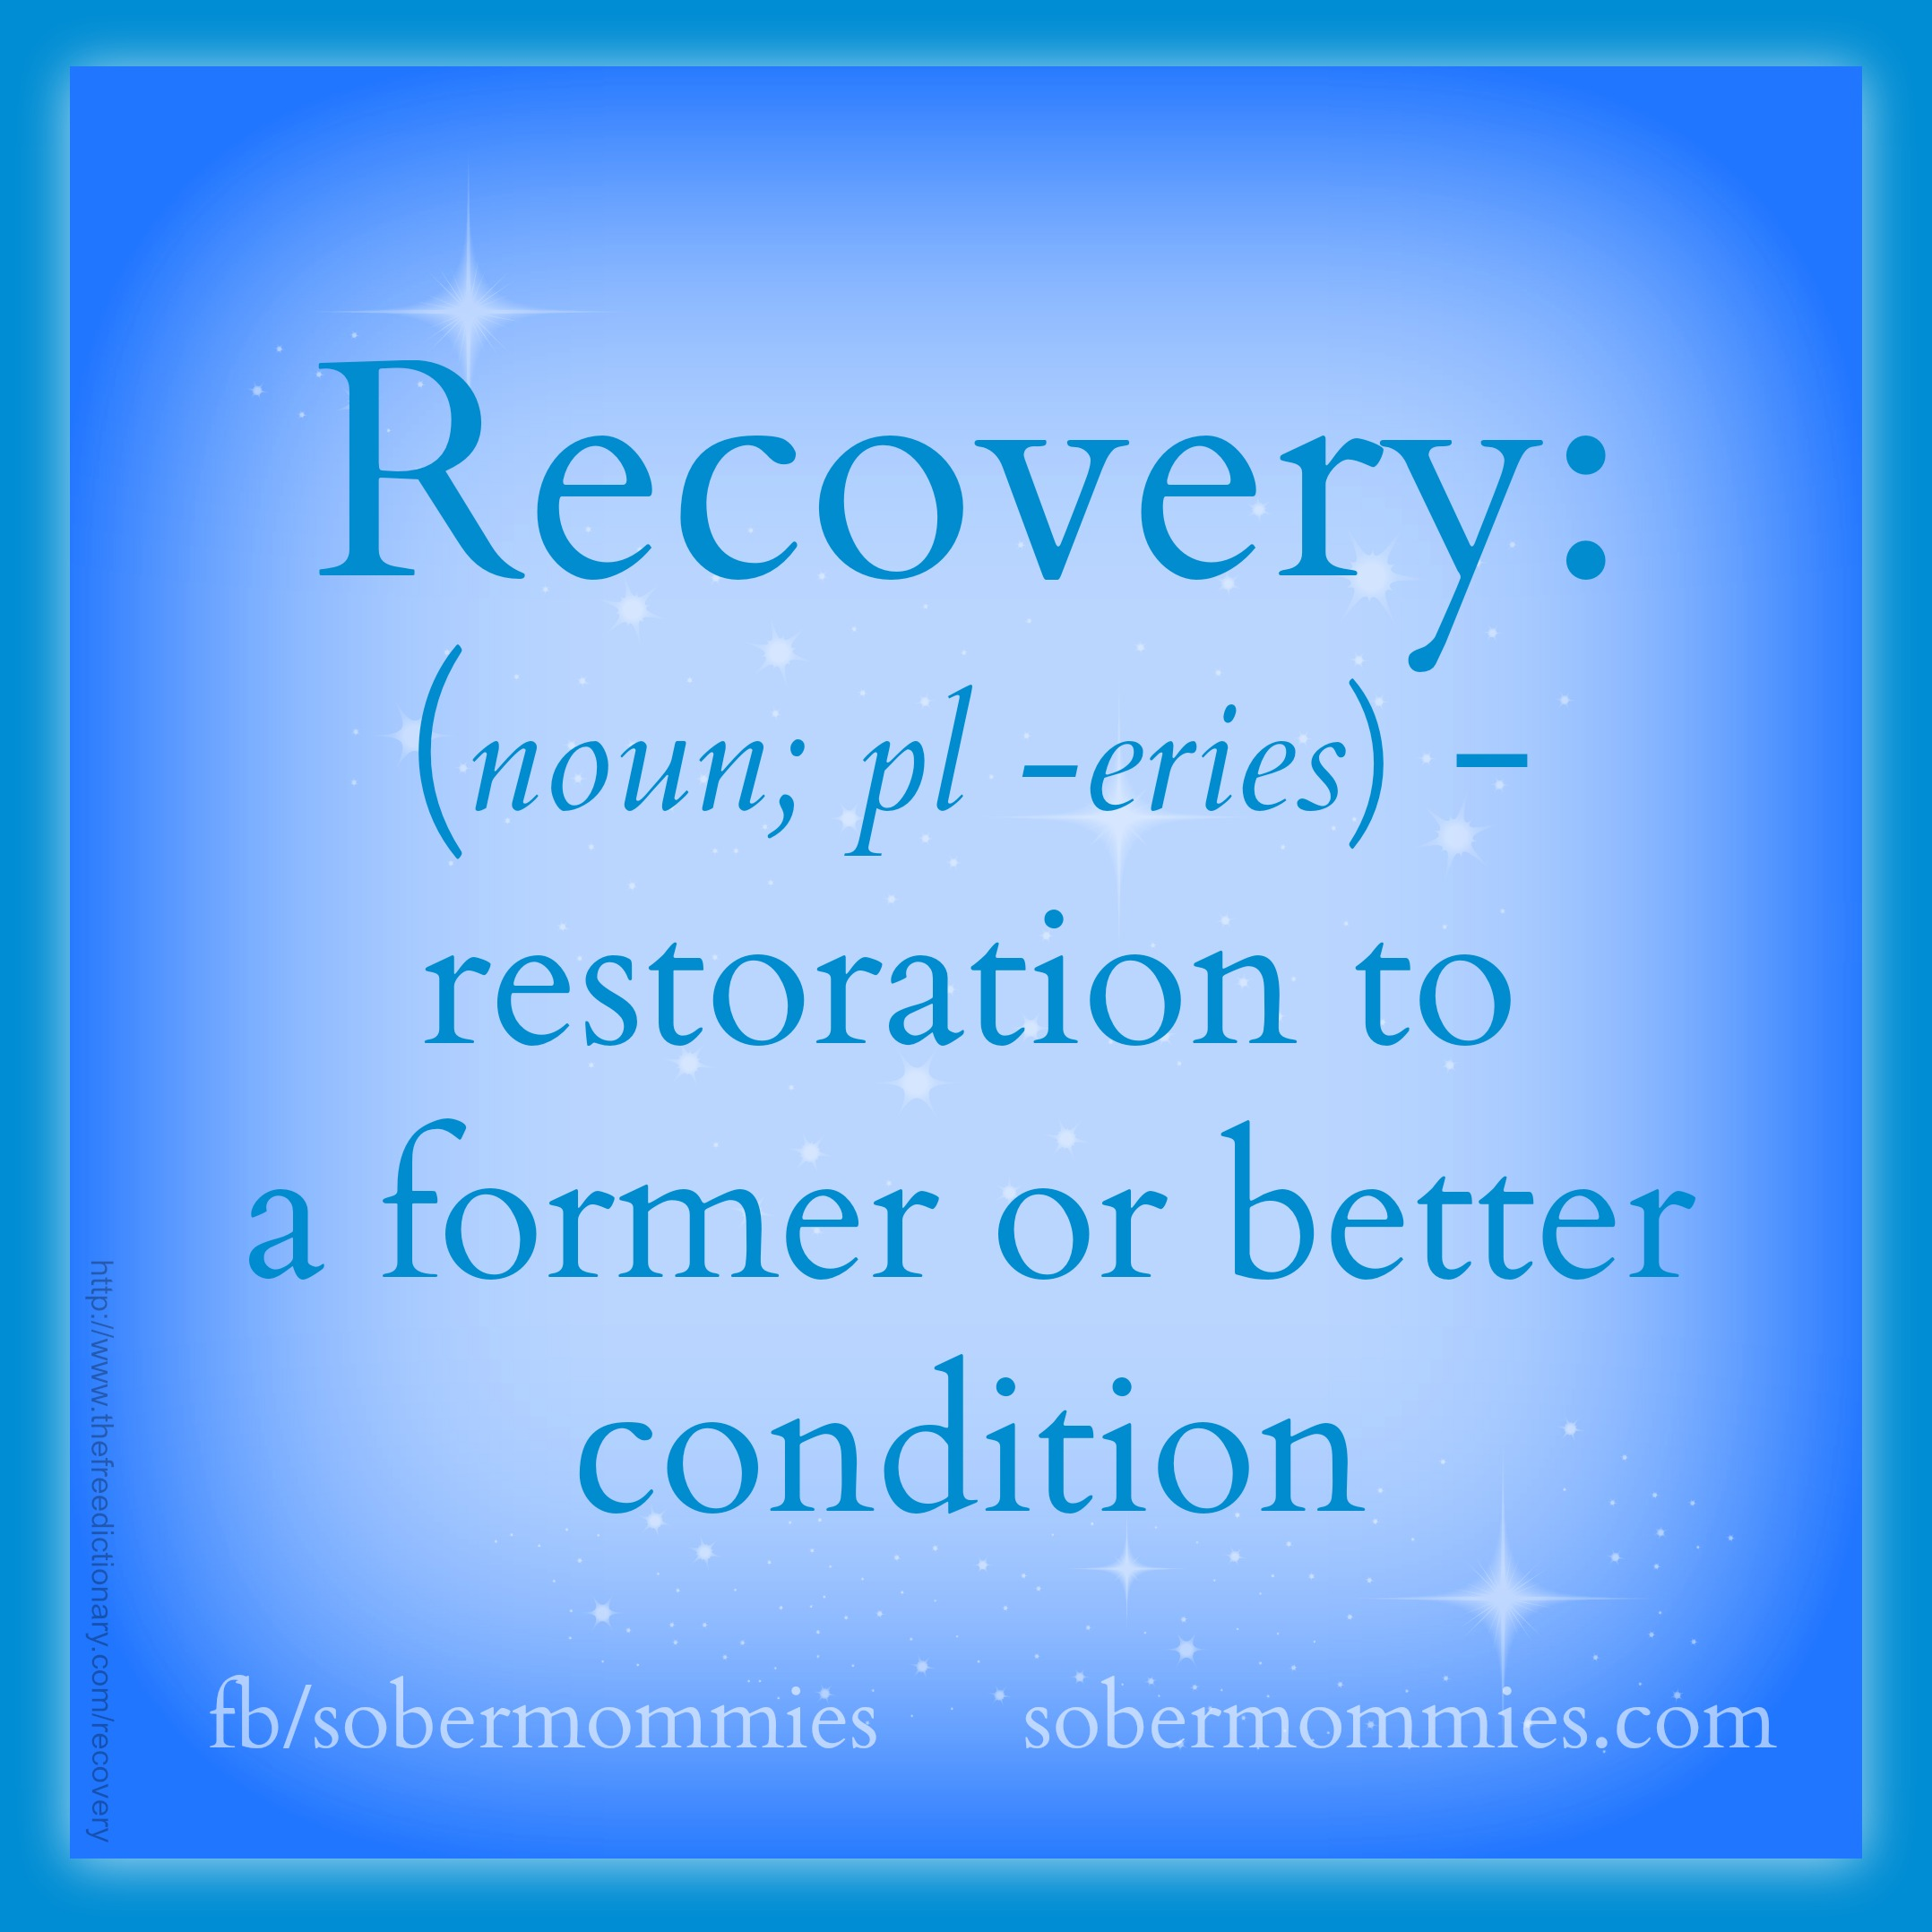 Ed Recovery Quotes Quotesgram: Quotes About Sobriety From Drugs. QuotesGram